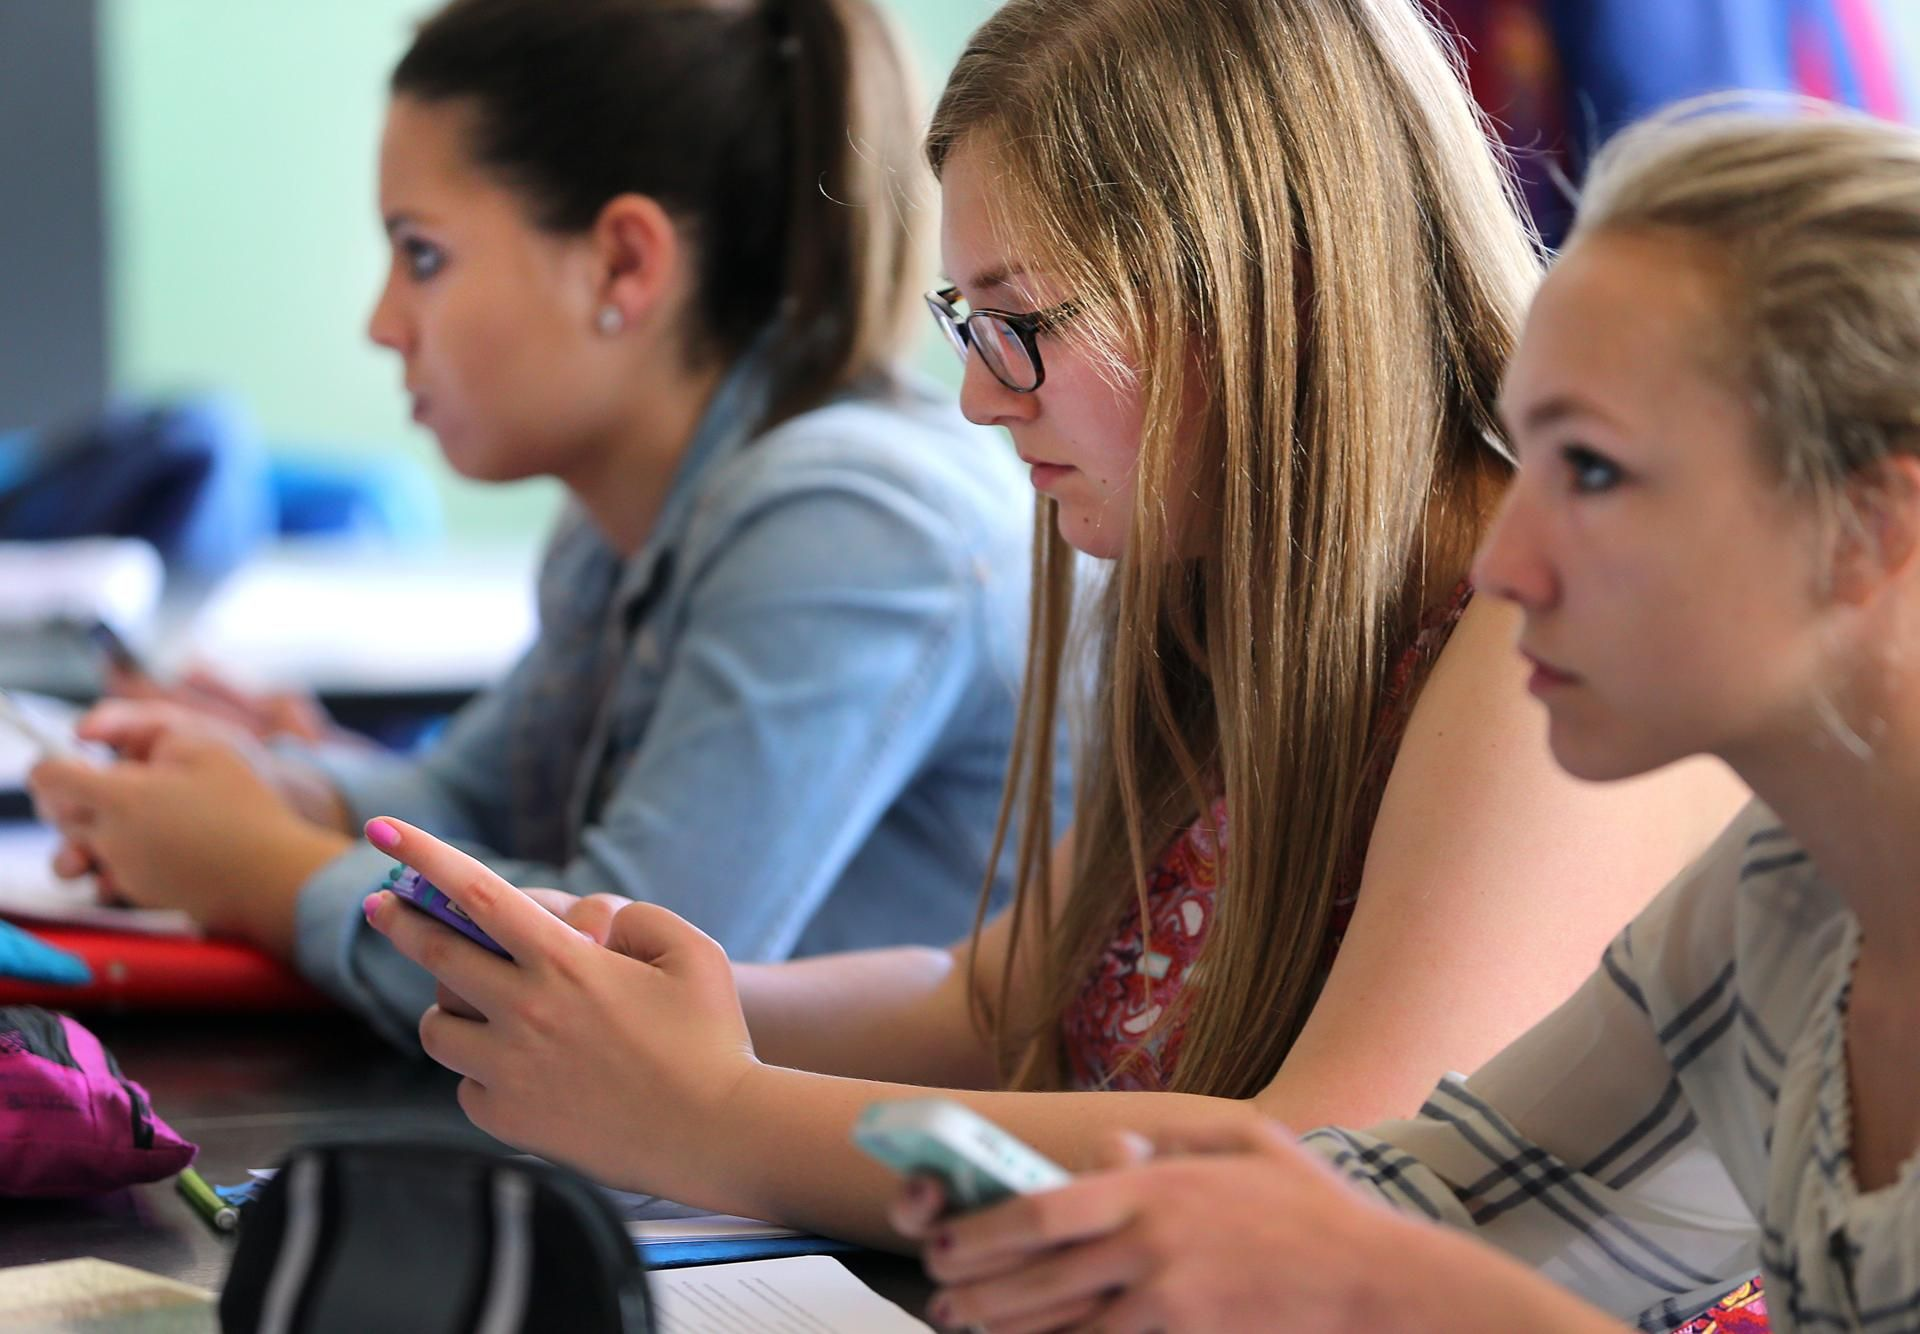 cellphones in school a teaching tool or distraction the boston buy essay here personal statement essay for high school get creative if you can imagine it you can build it terragen creative